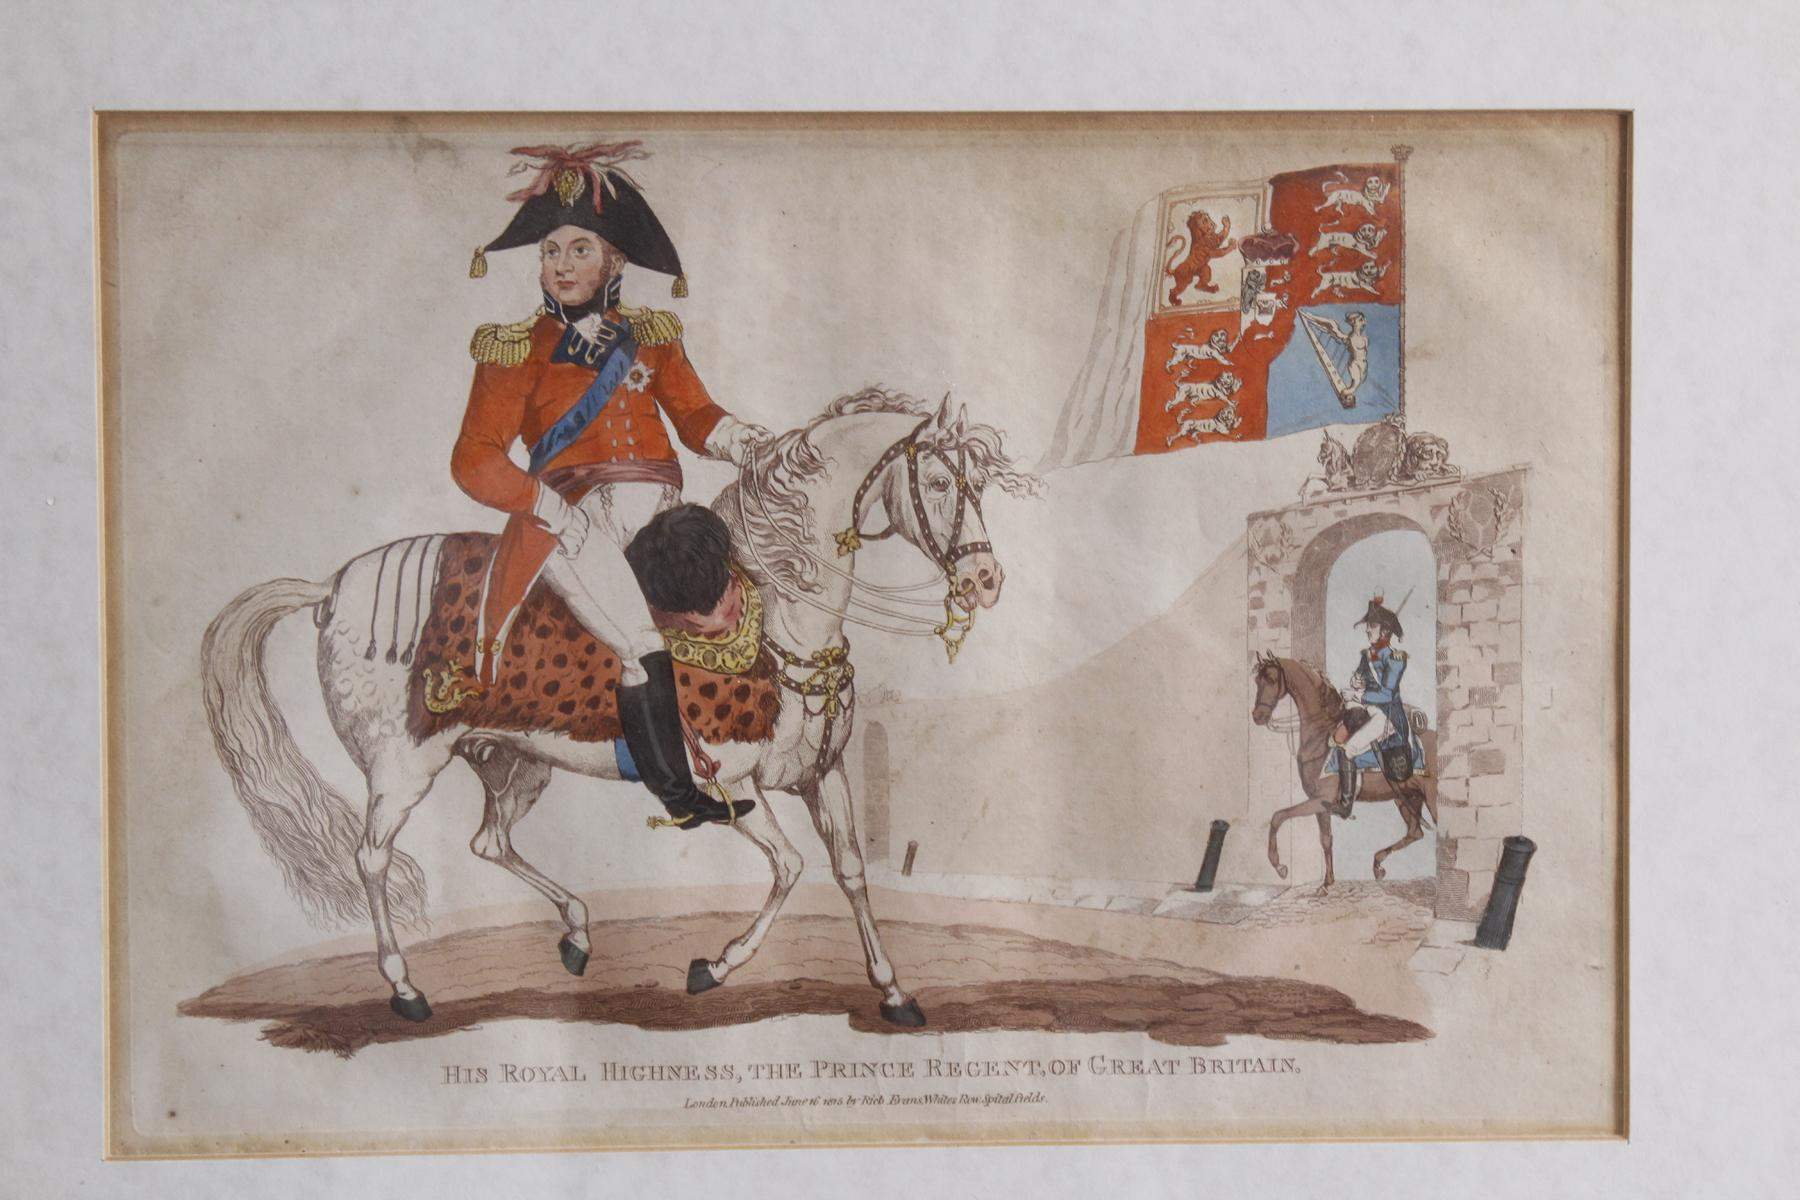 Kupferstich von 1815, Hus Royal Highness, The Prince Regent Of Great Britain-2